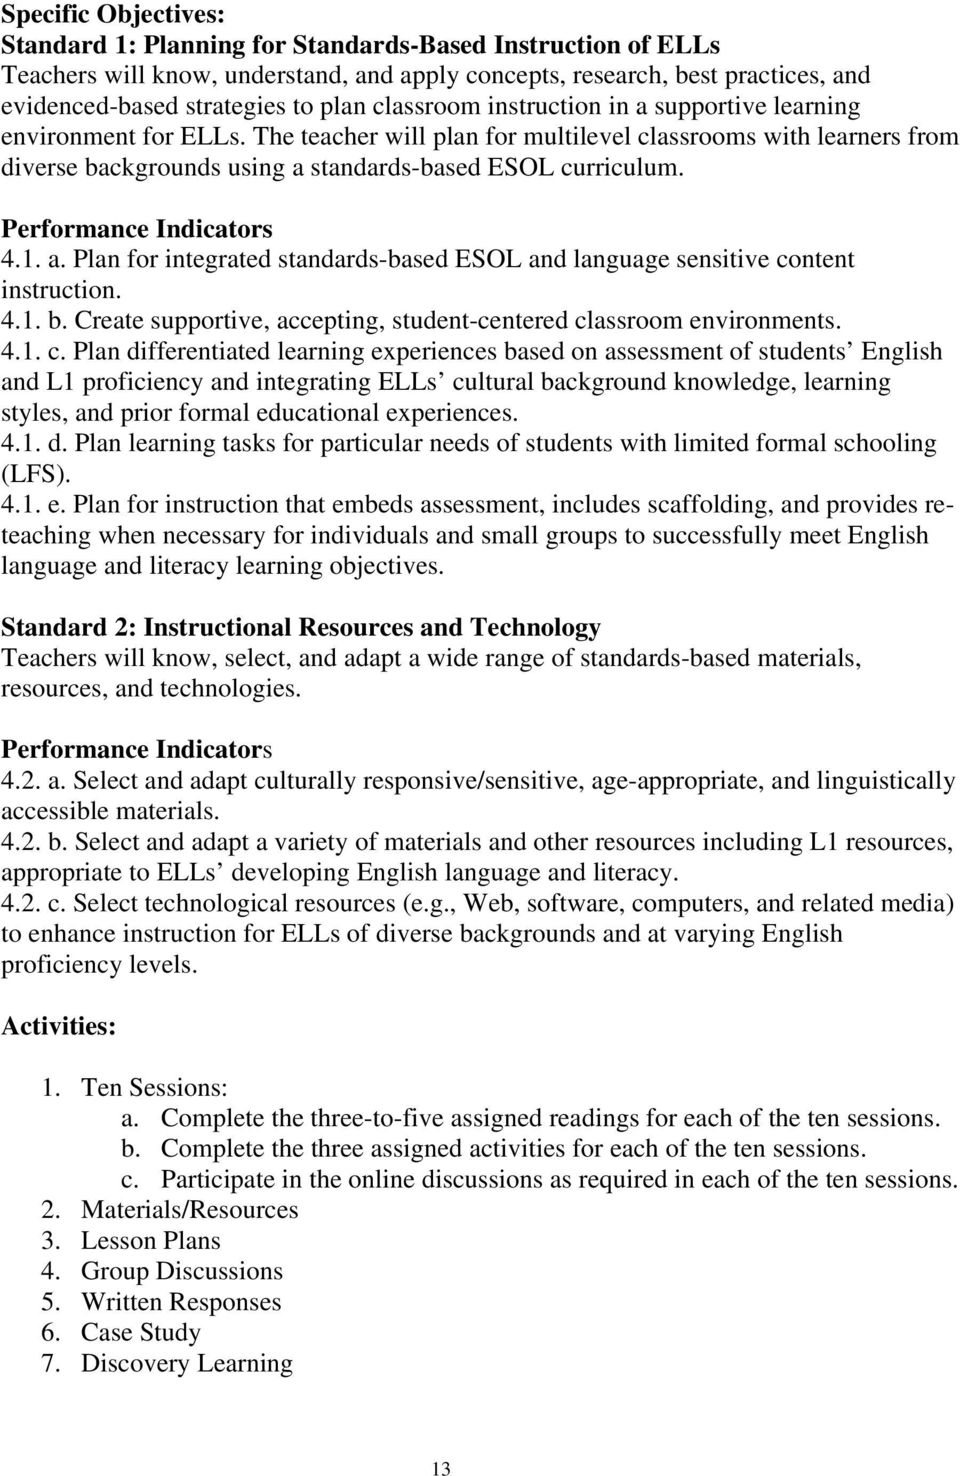 Performance Indicators 4.1. a. Plan for integrated standards-based ESOL and language sensitive co